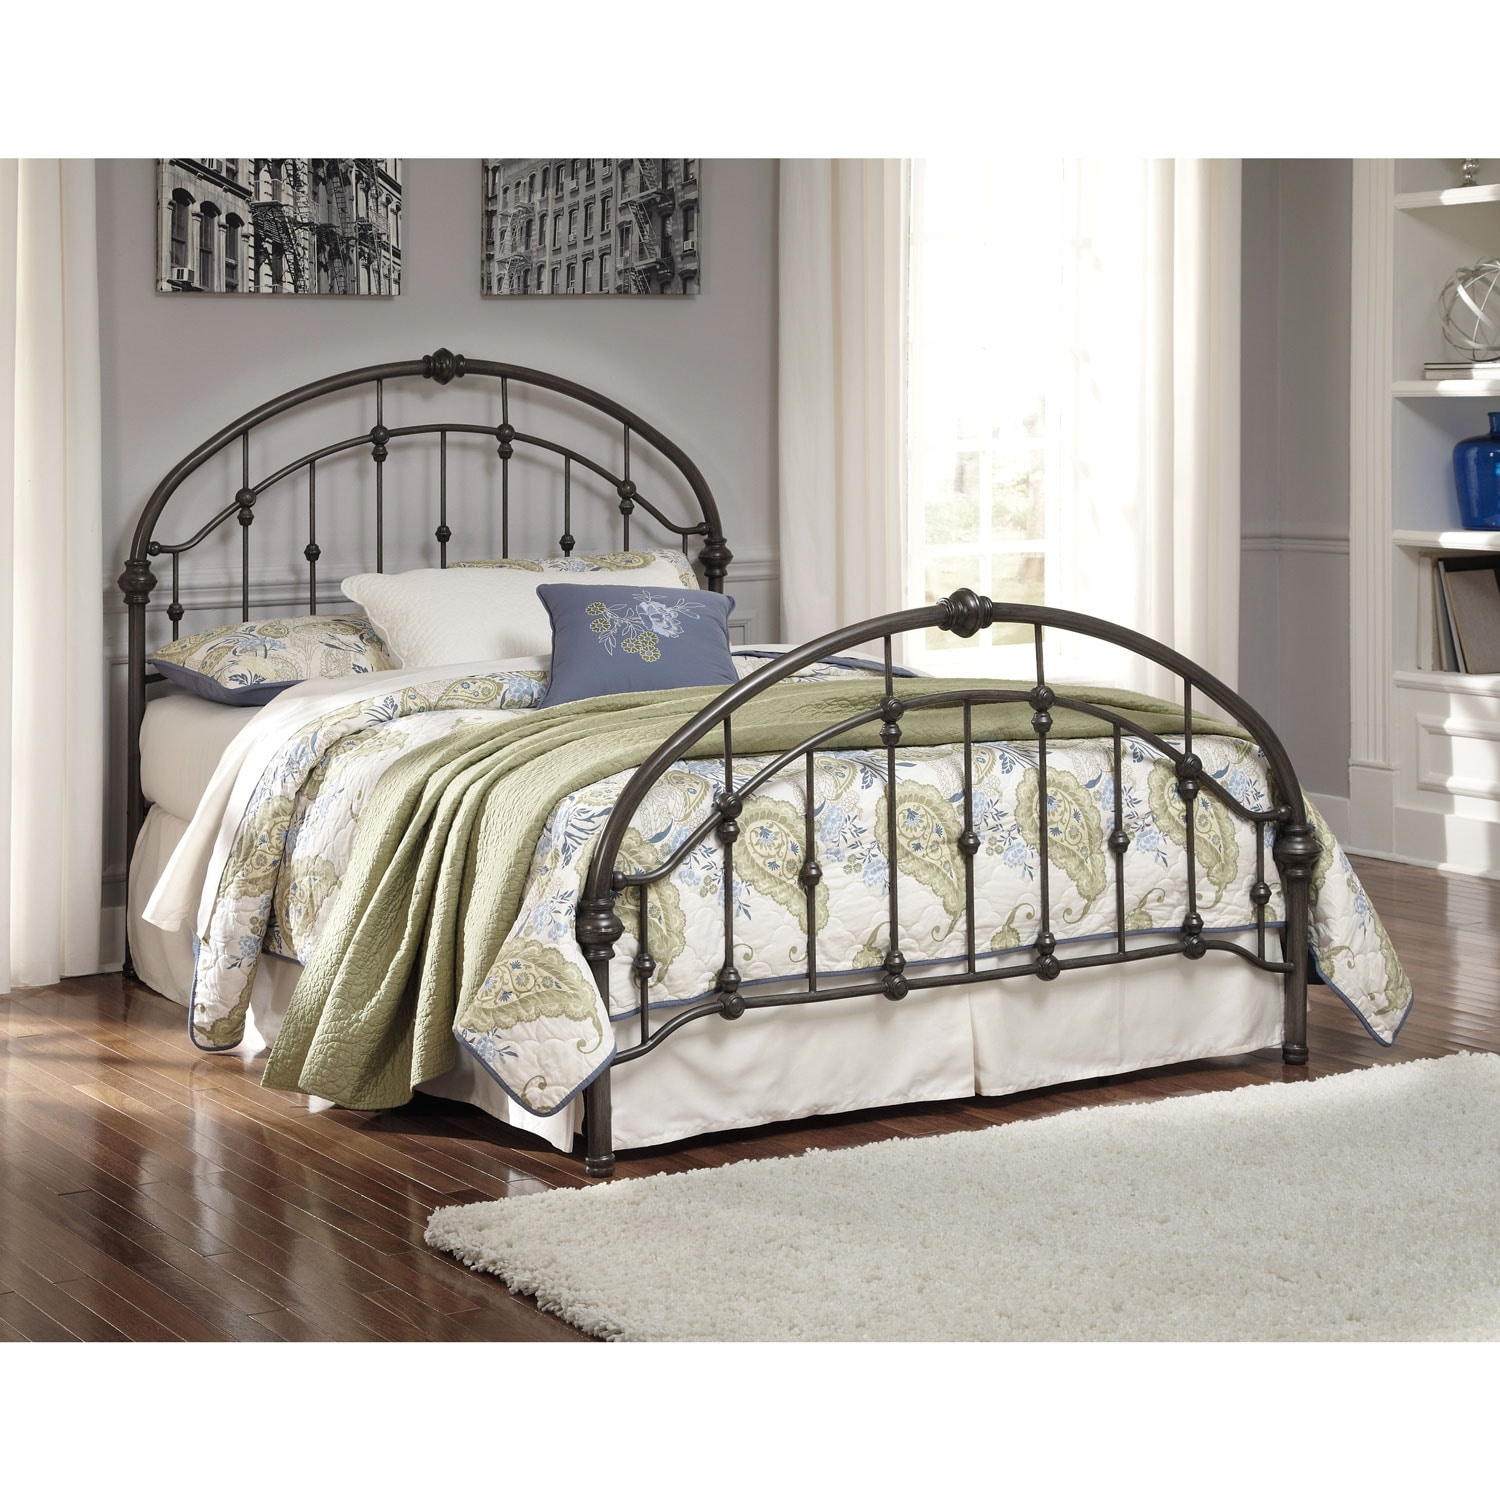 Nashburg queen metal headboard bronze the brick for Metal bedroom furniture